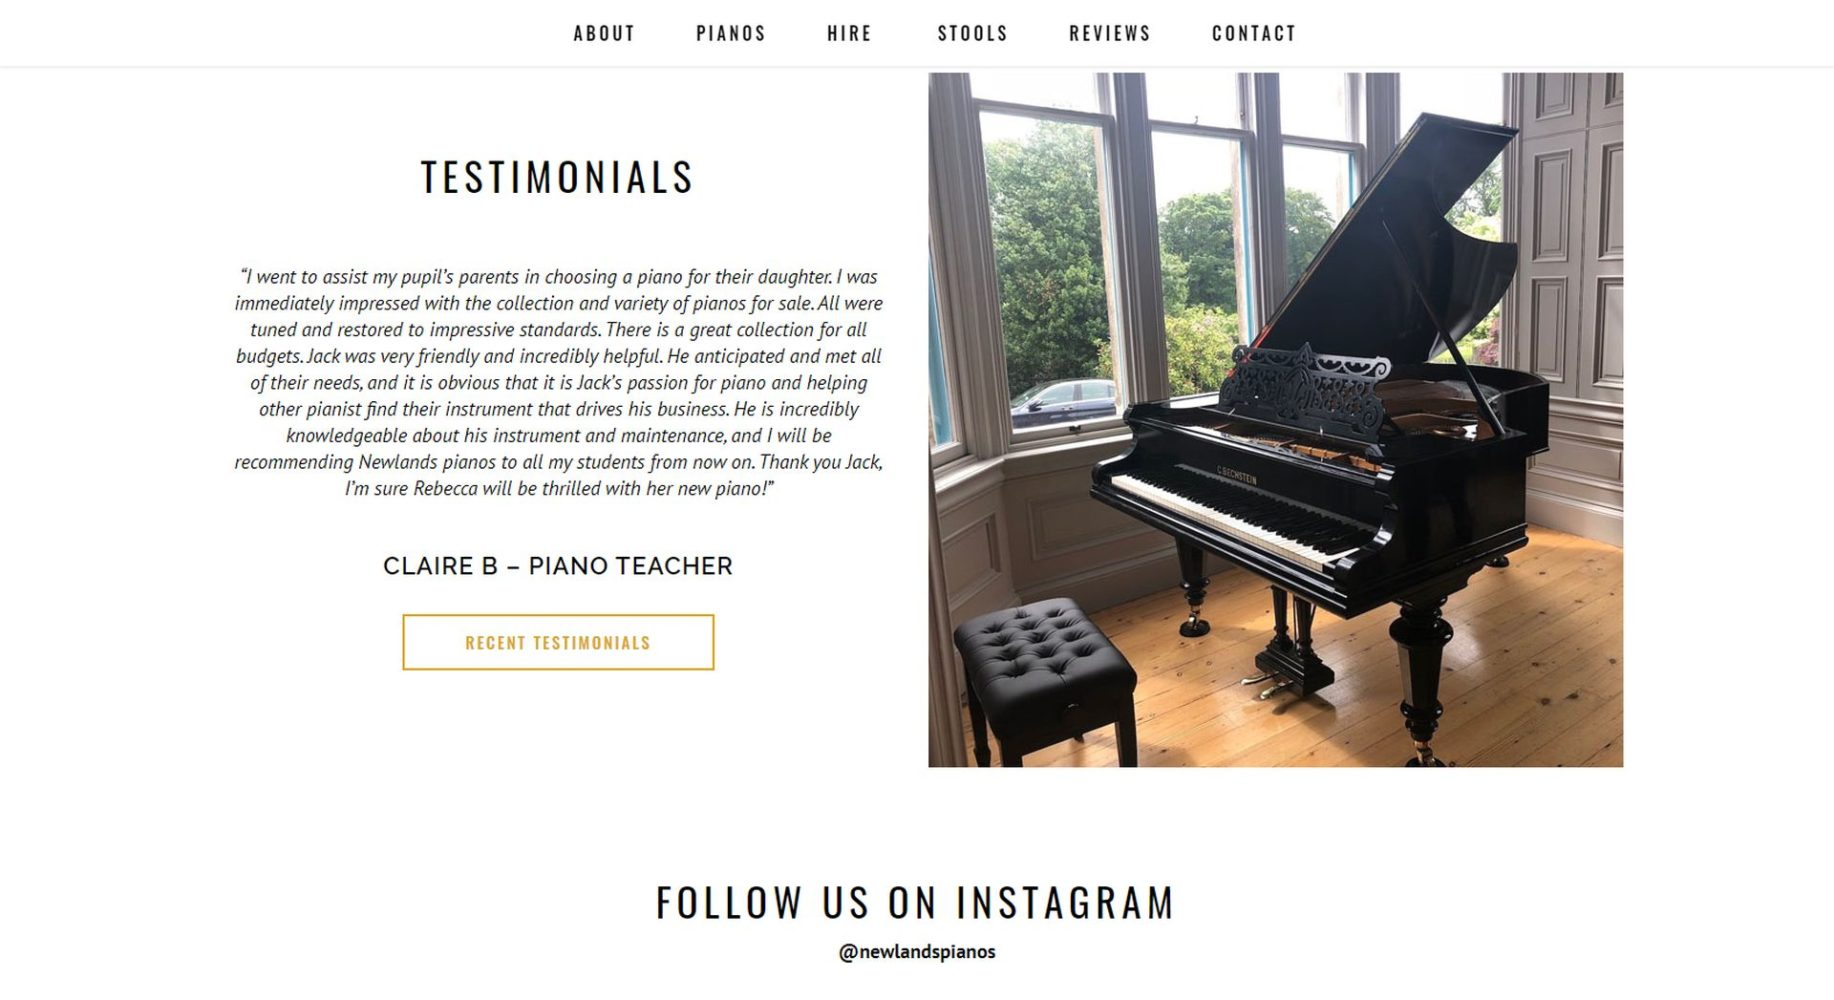 Newlands Pianos Website Design About